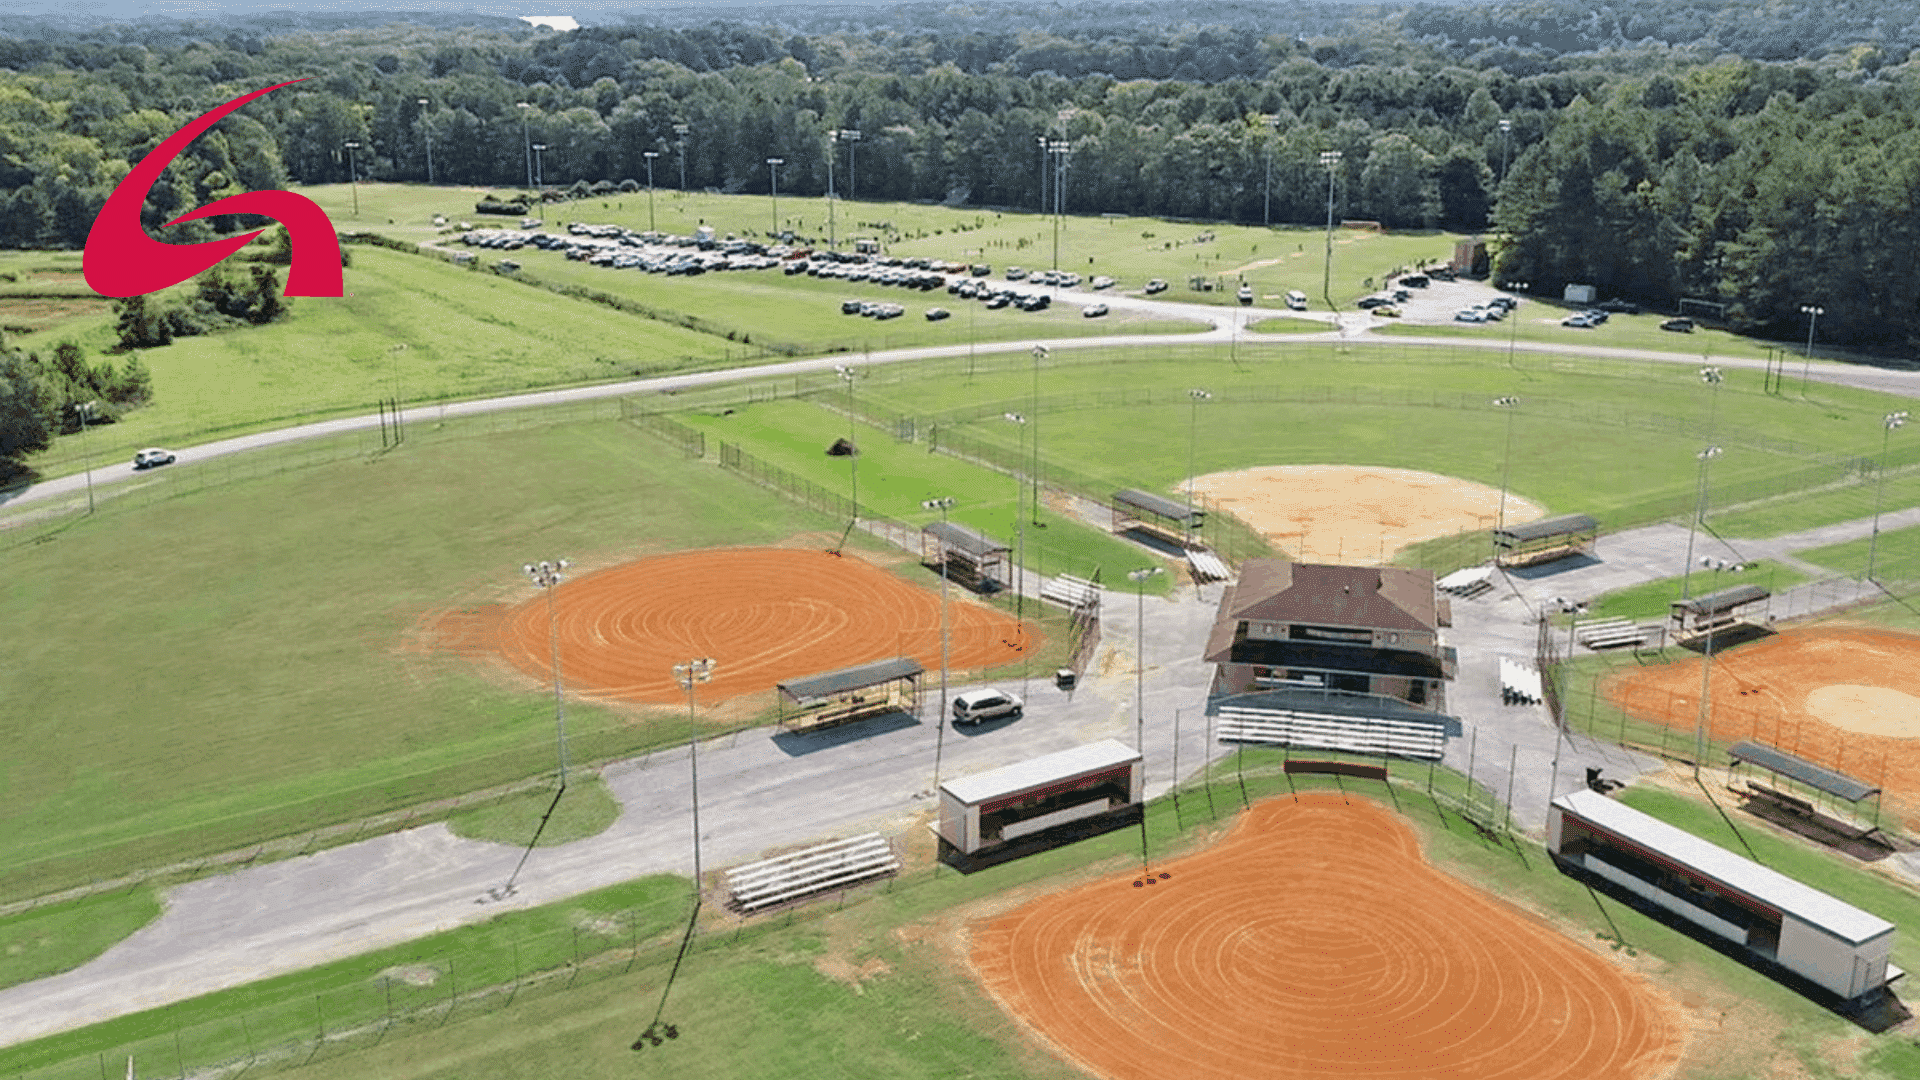 Alabama Have Planning to Build a Multi-million Dollar Riverfront Sports Complex